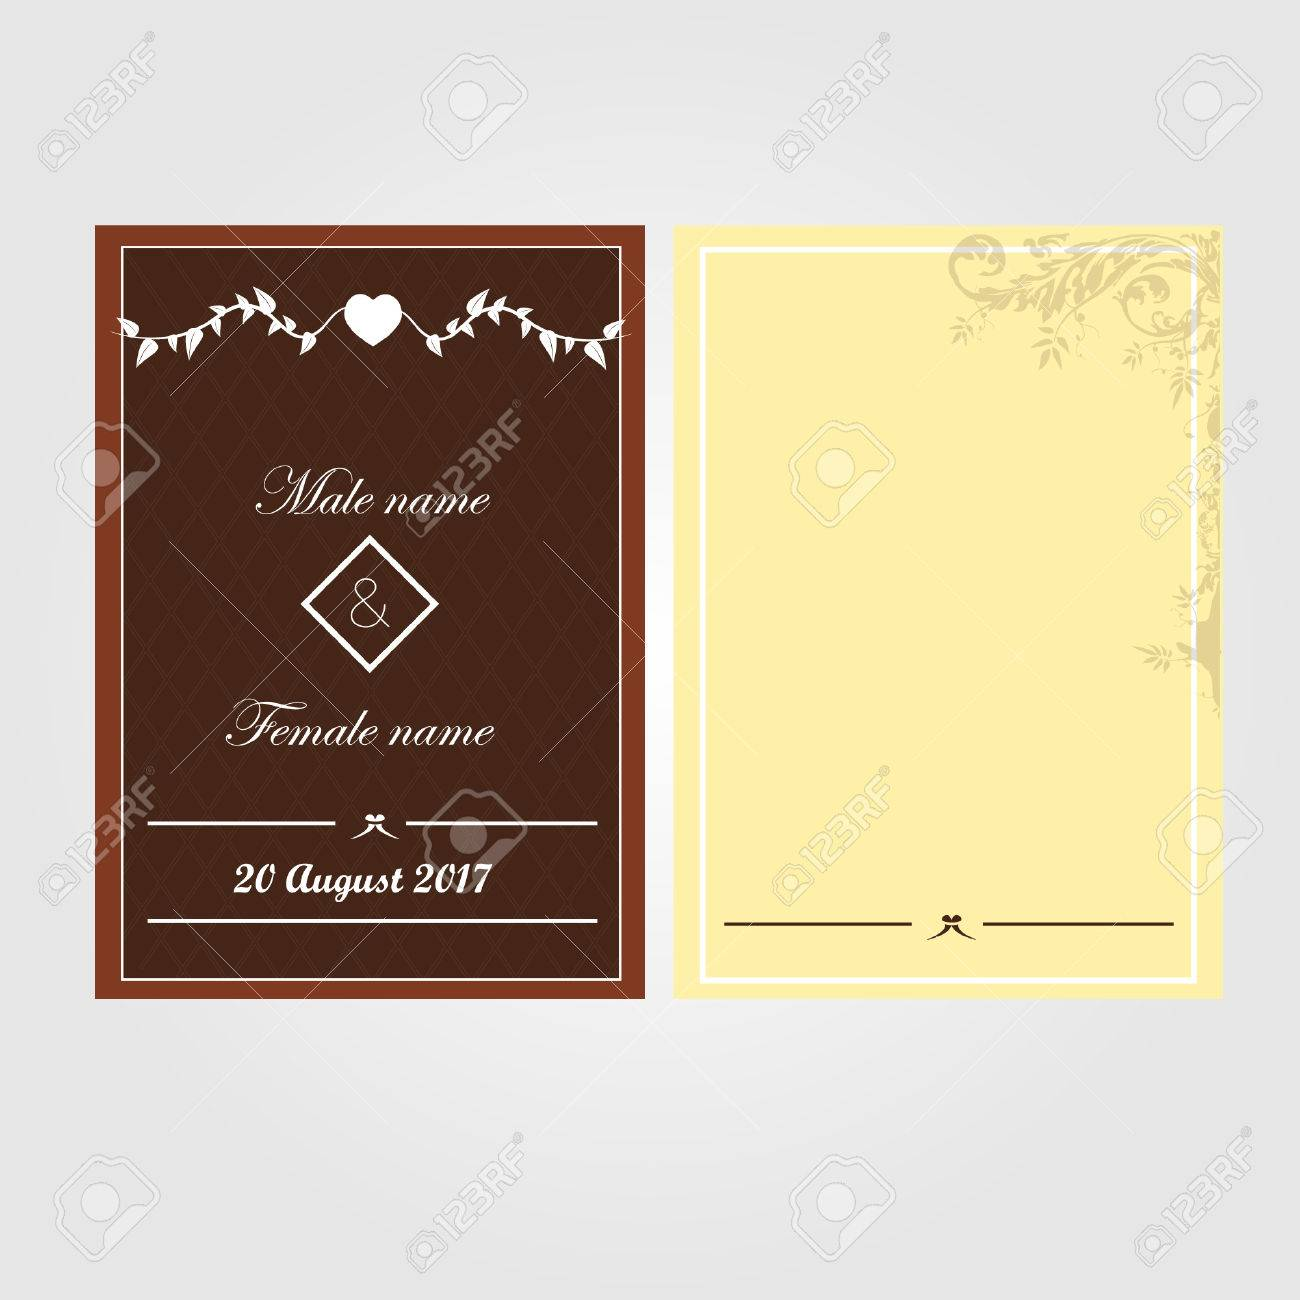 Minimalist wedding invitation with brown background royalty free minimalist wedding invitation with brown background stock vector 71989803 stopboris Image collections